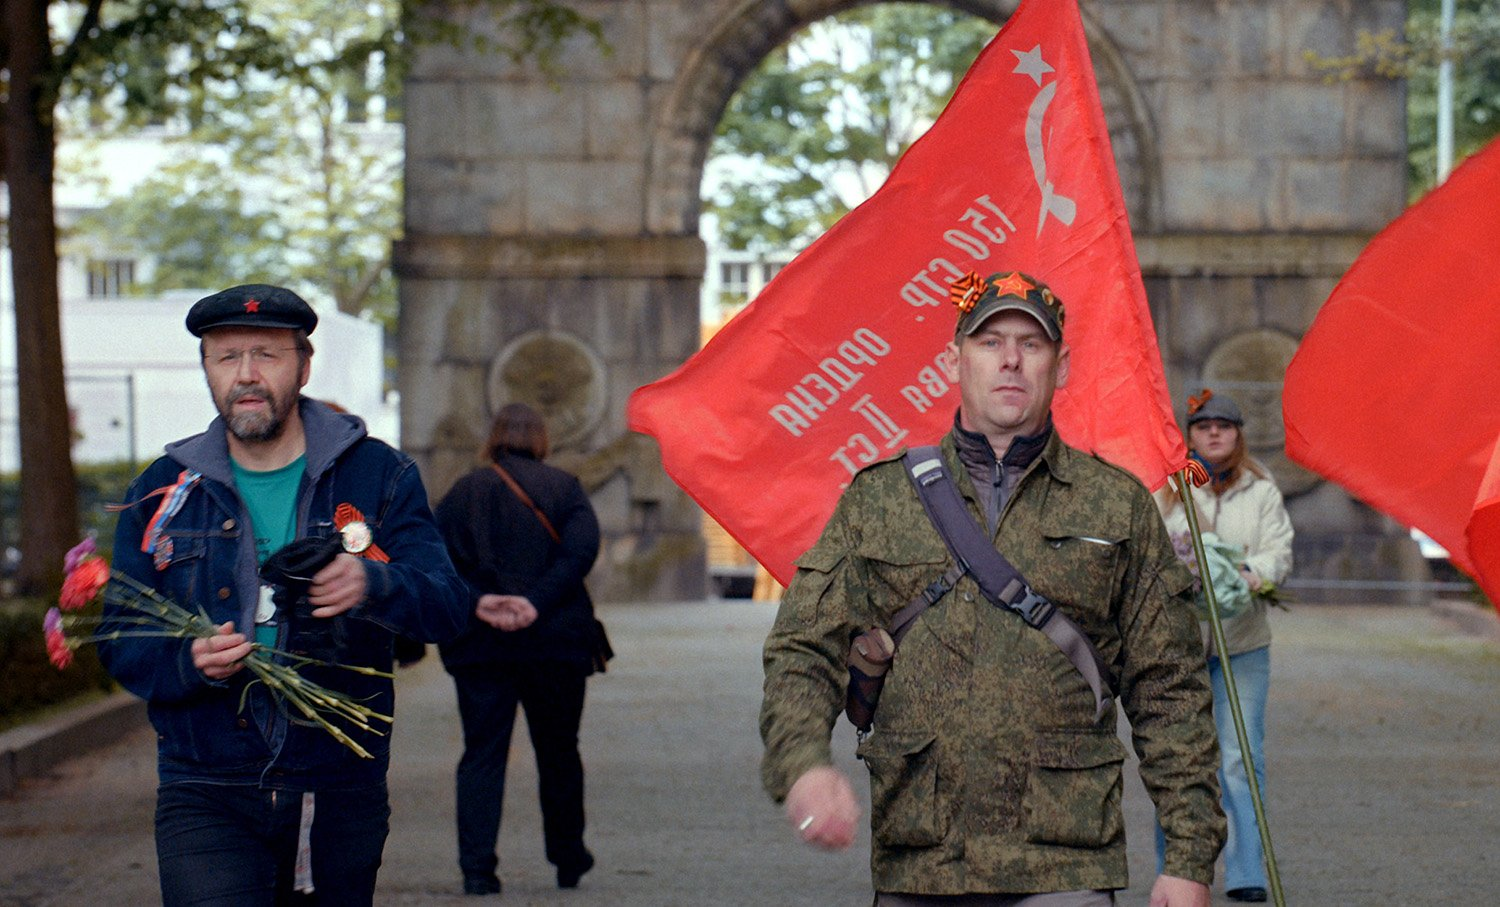 red flags in background, army style guy, victory day movie